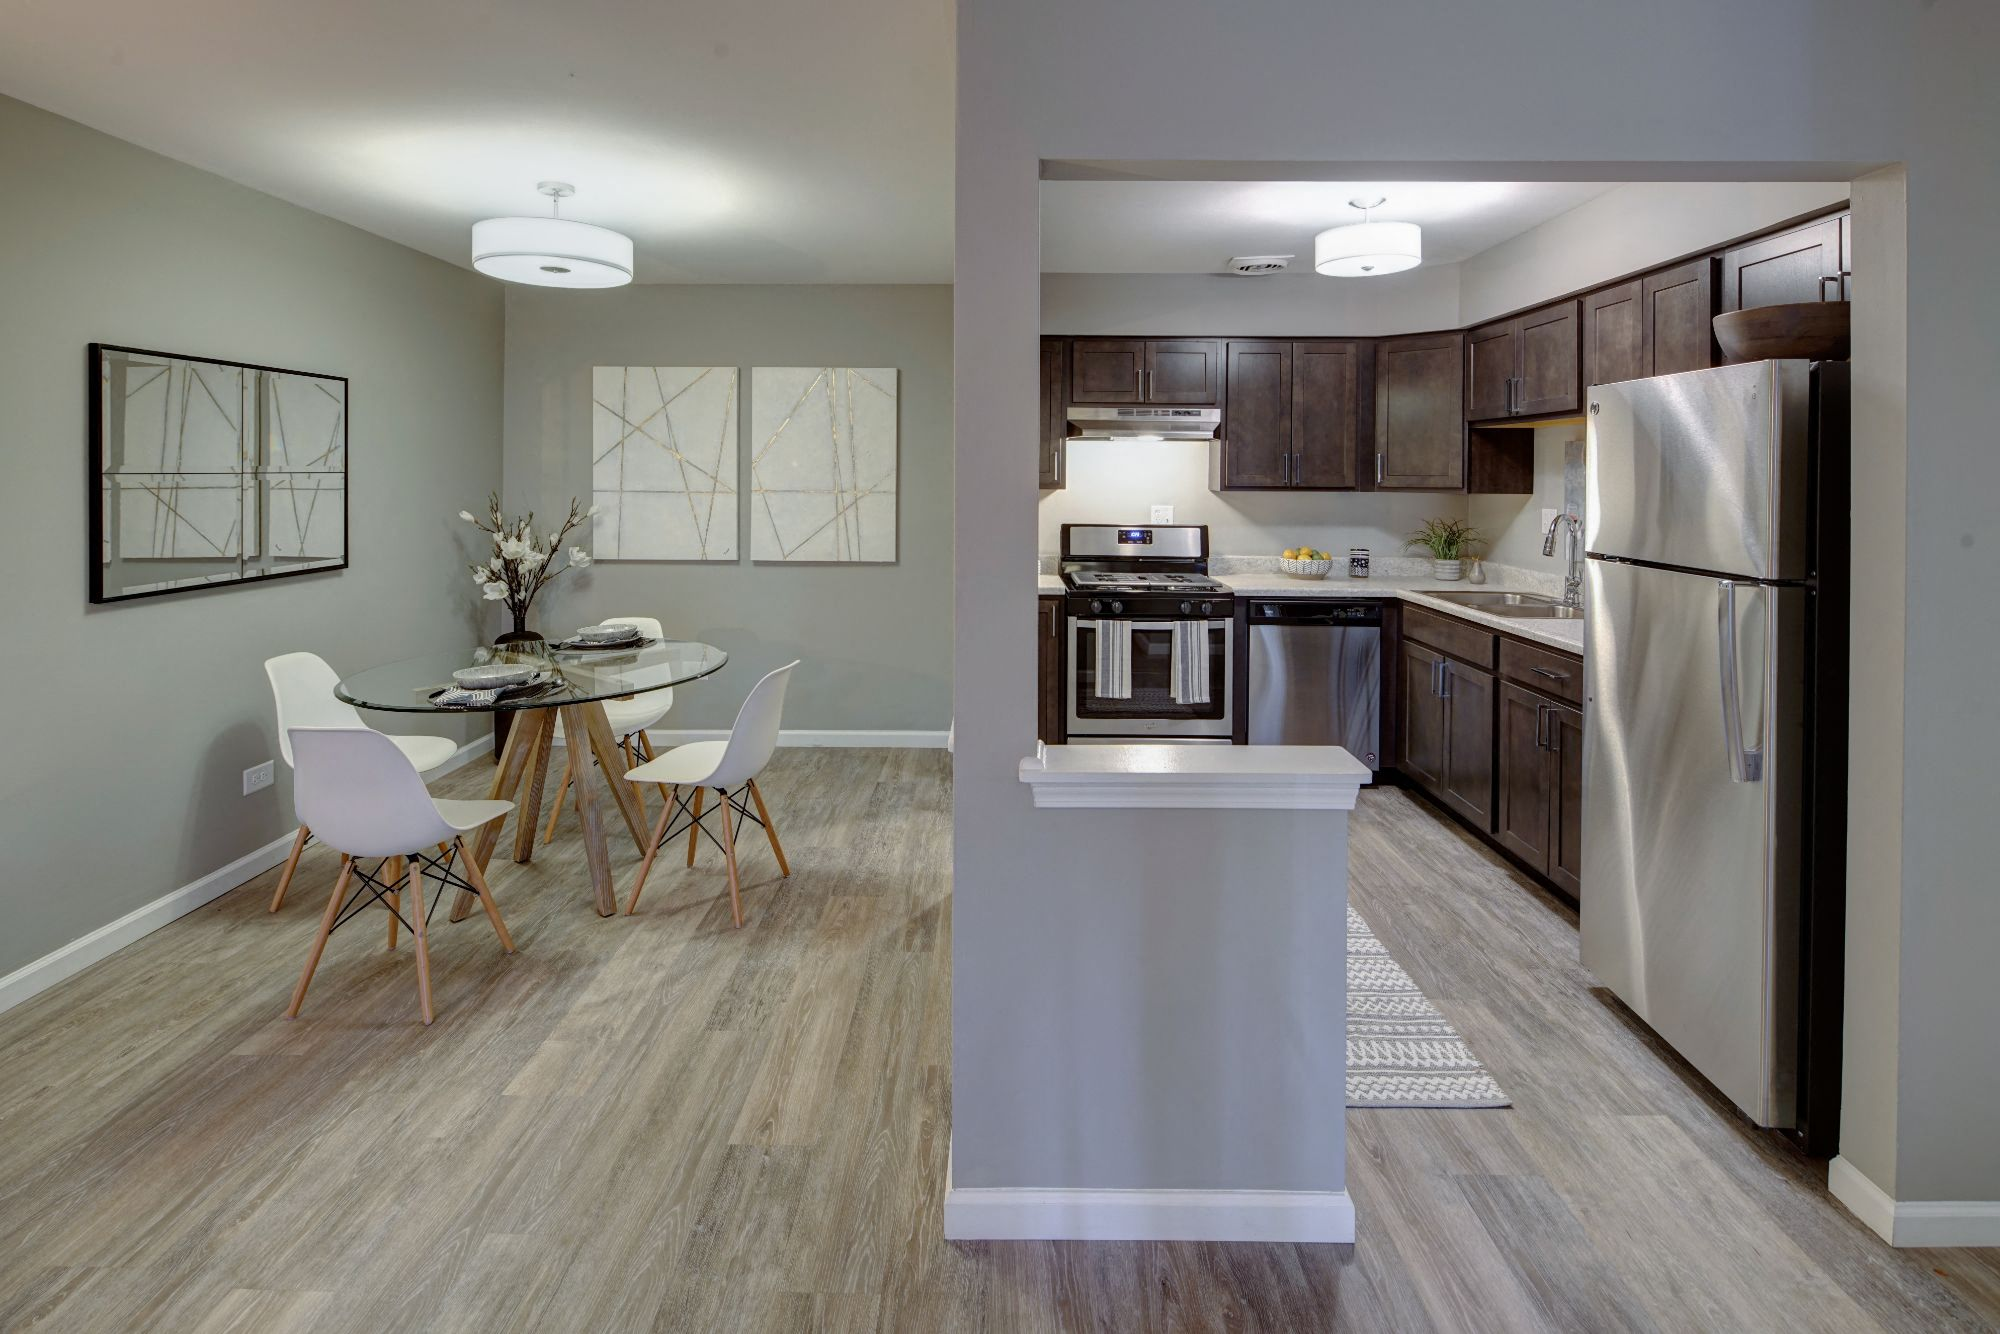 Kitchen Come Dining View at Carol Stream Crossing, Carol Stream, IL, 60188